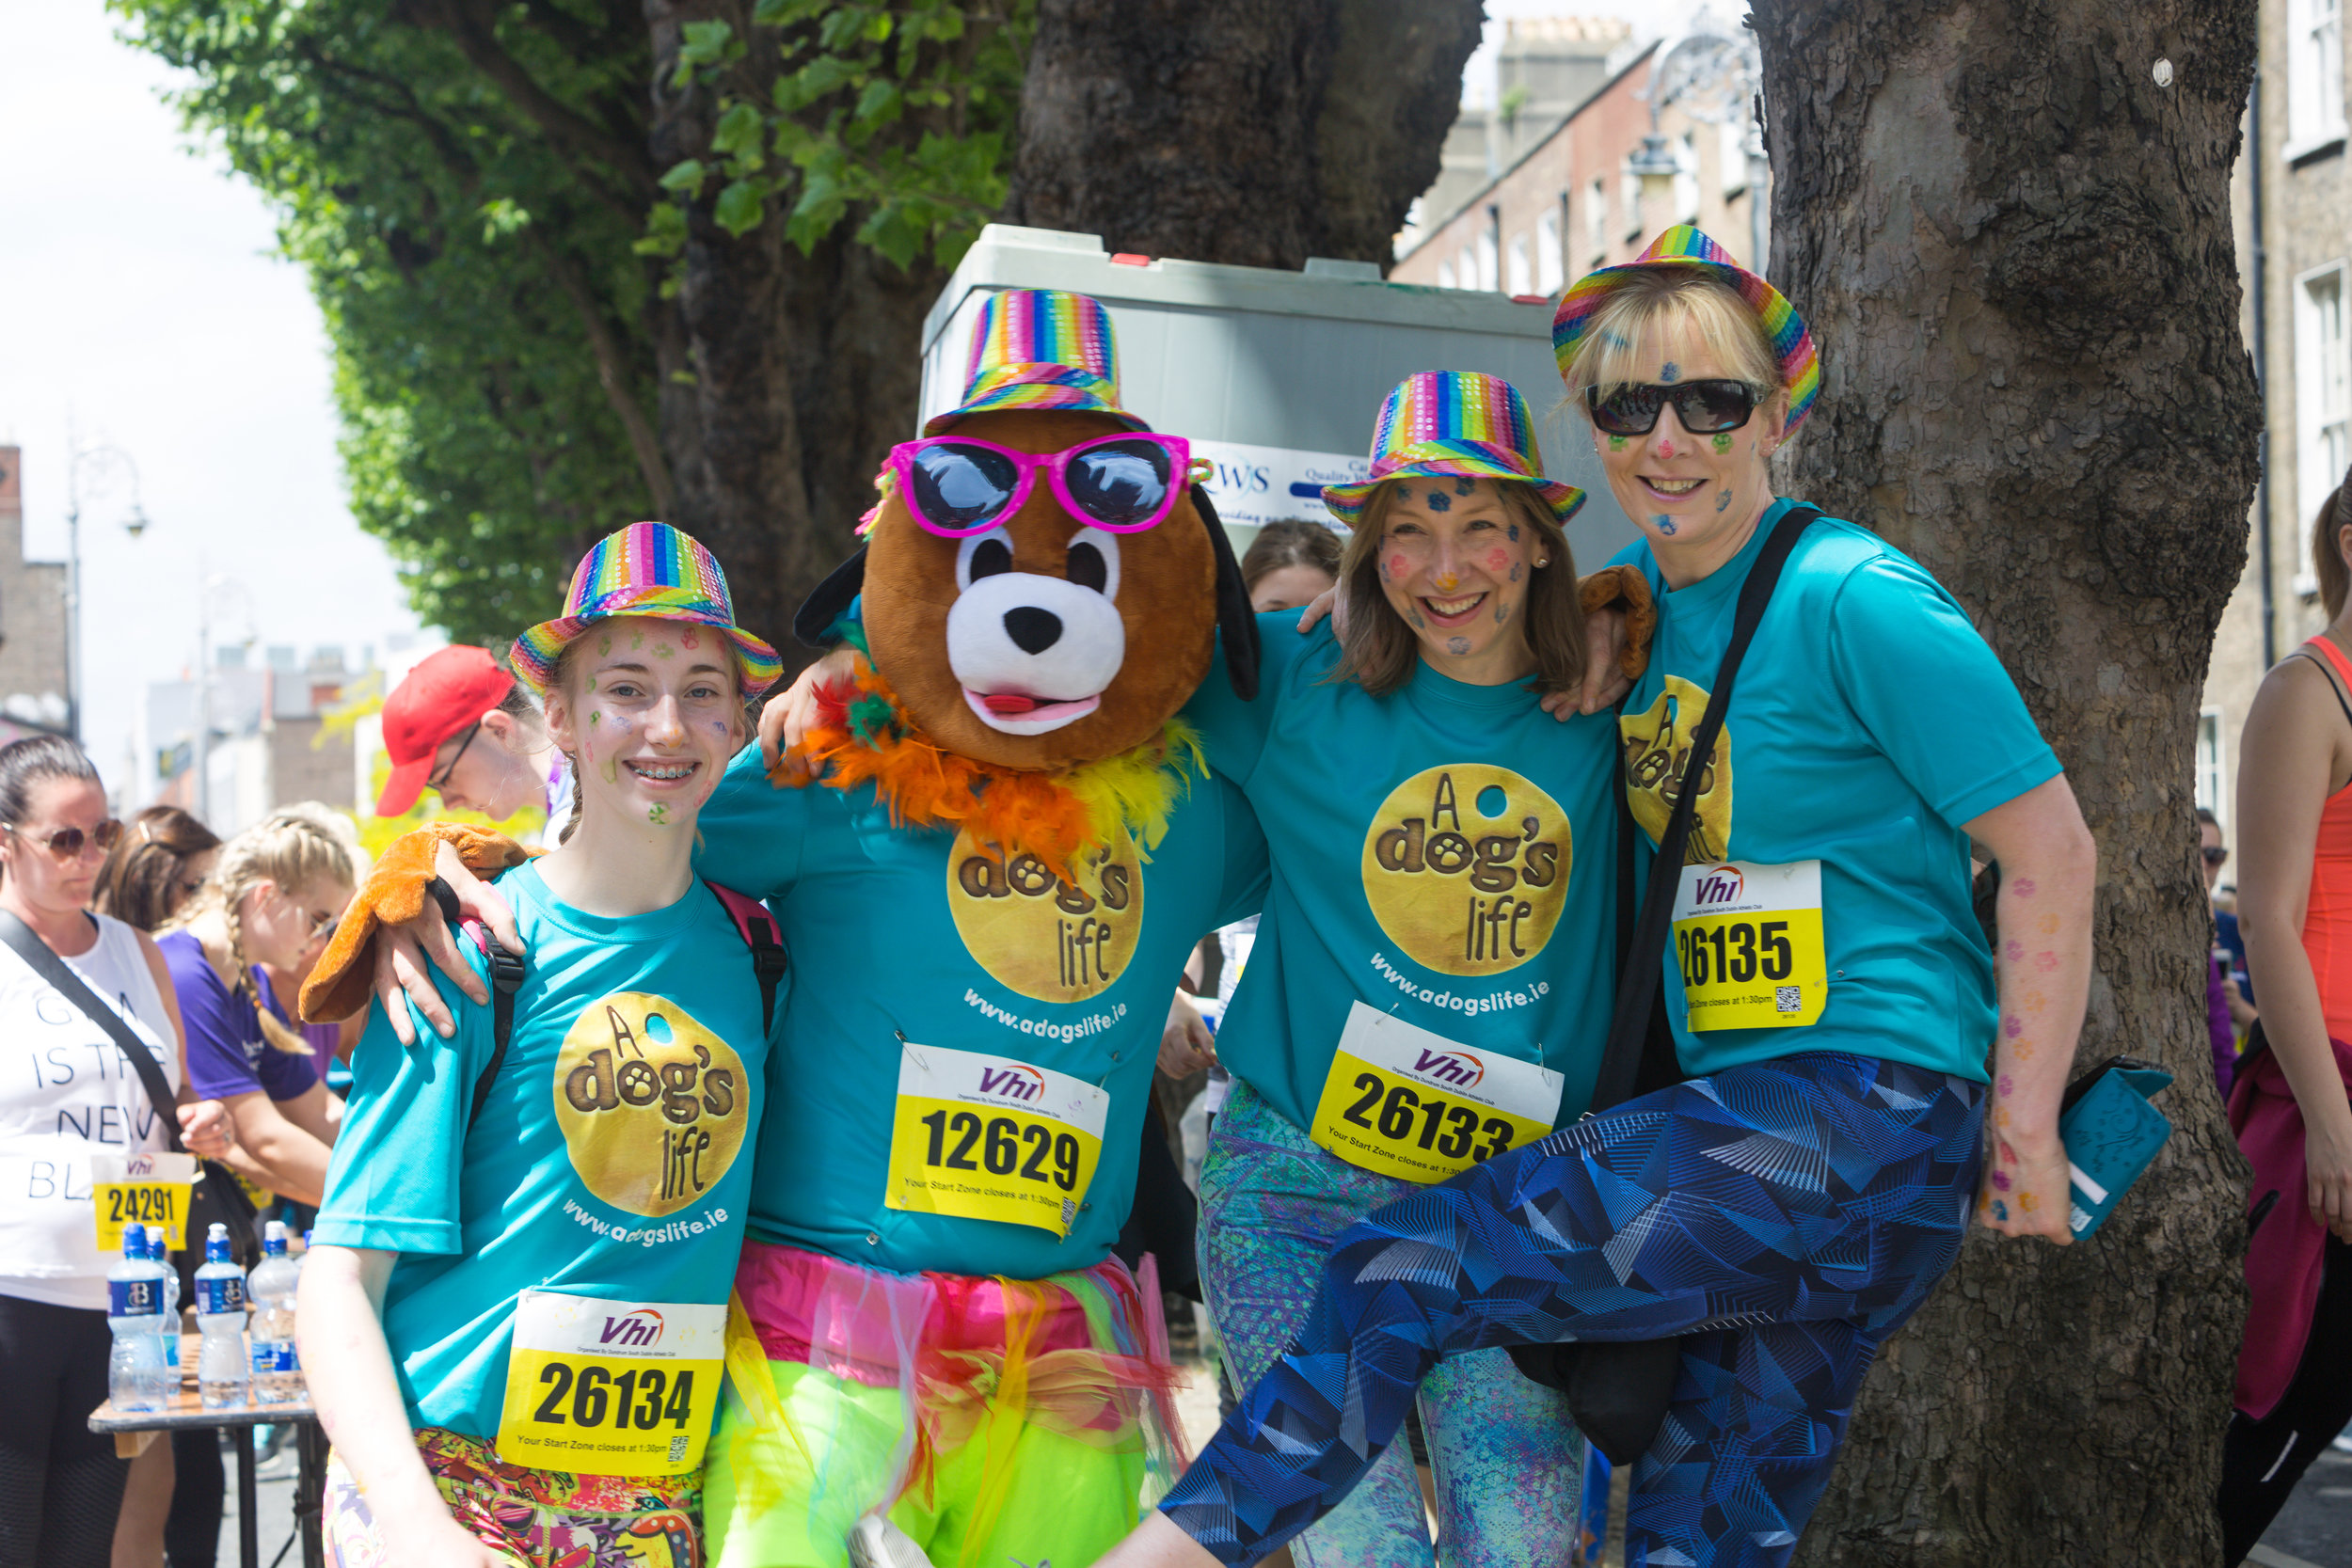 AH - Pre Race - Dog, a dogs life, mascot, funny, family, smiles.jpg